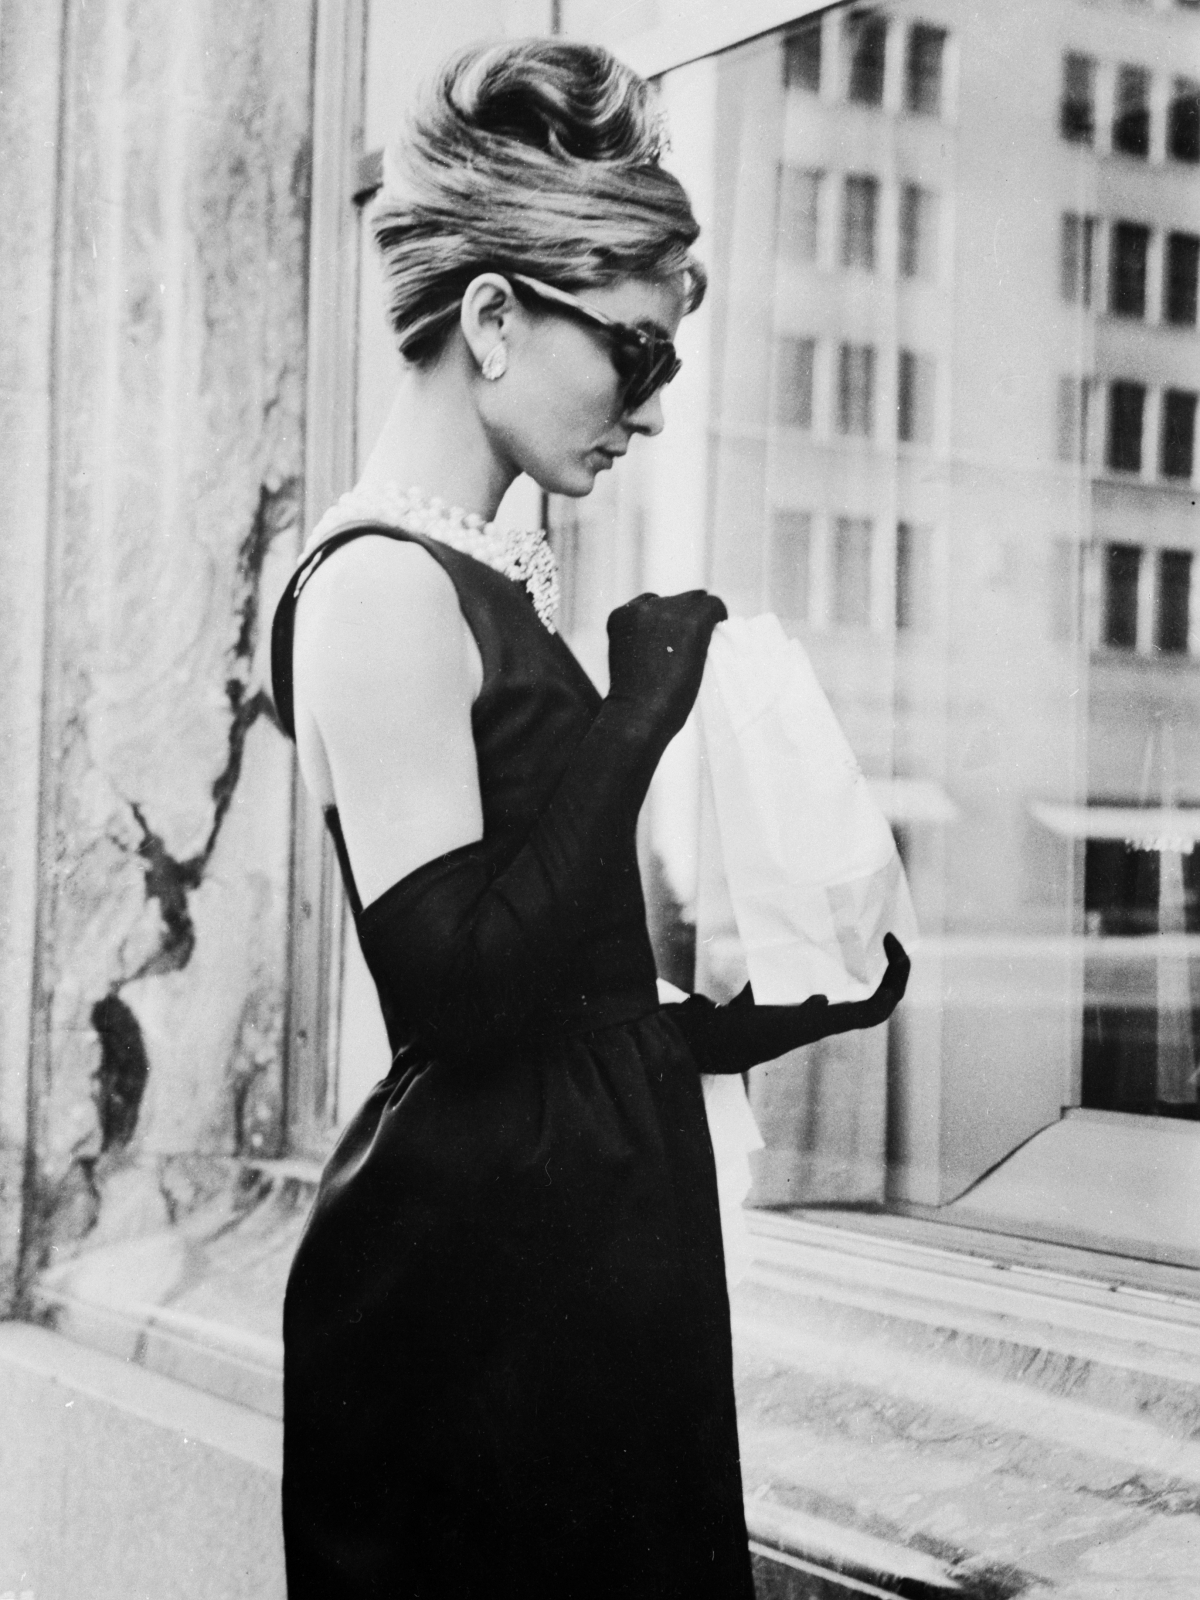 Audrey Hepburn in New York during location filming for Breakfast At Tiffany's